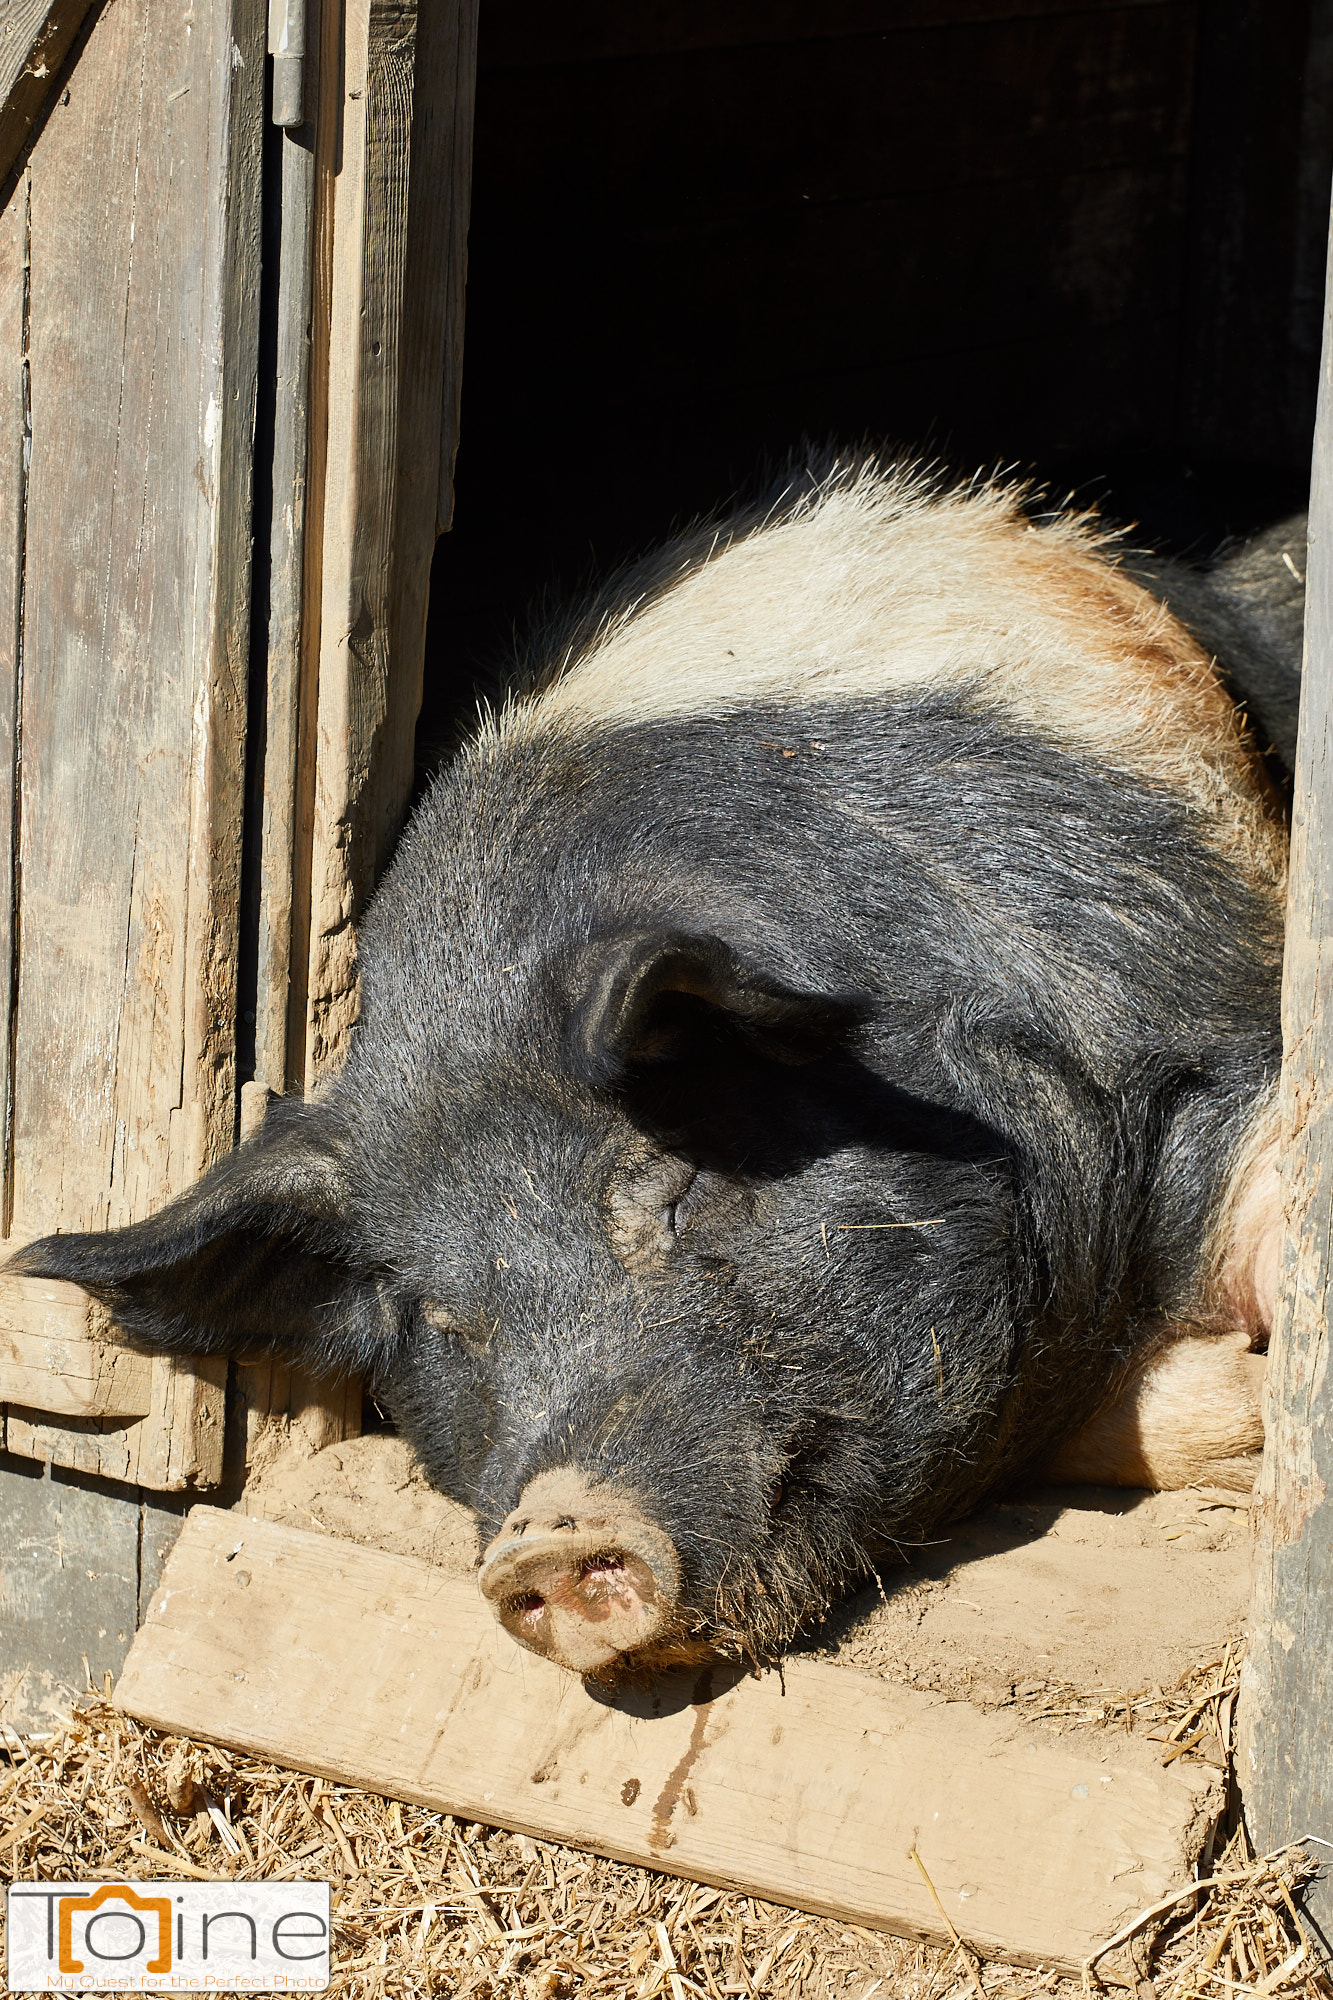 This pig was just taking a nap. Unlike his buddies the horses, he clearly had the day off!